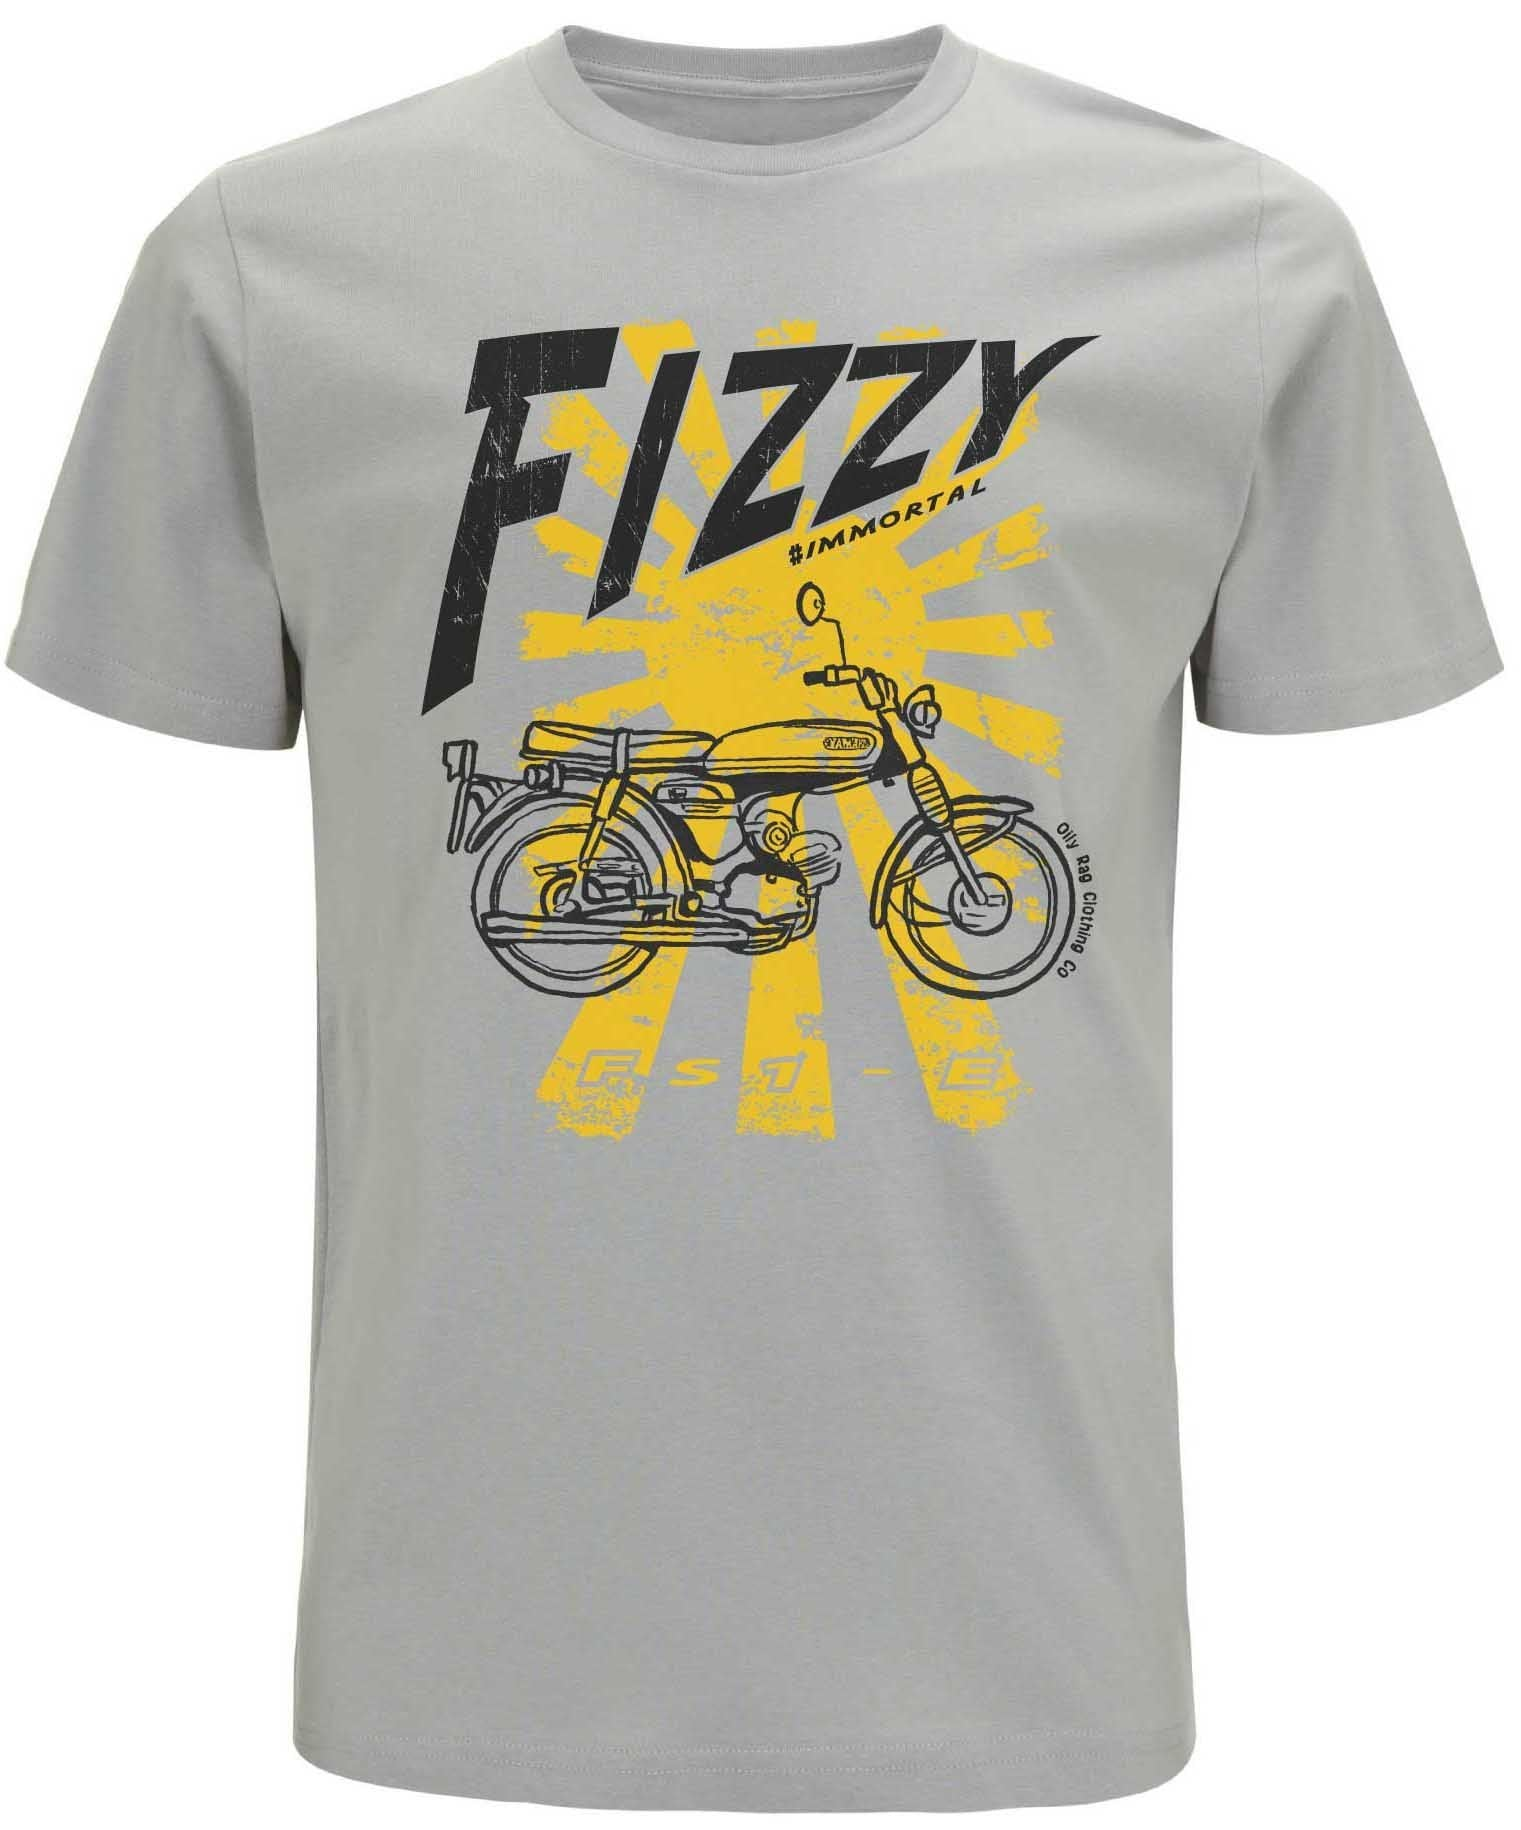 Oily Rag Clothing - Oily Rag Clothing Yamaha FS1-E (the Fizzy) T shirt - T-Shirts - Salt Flats Clothing